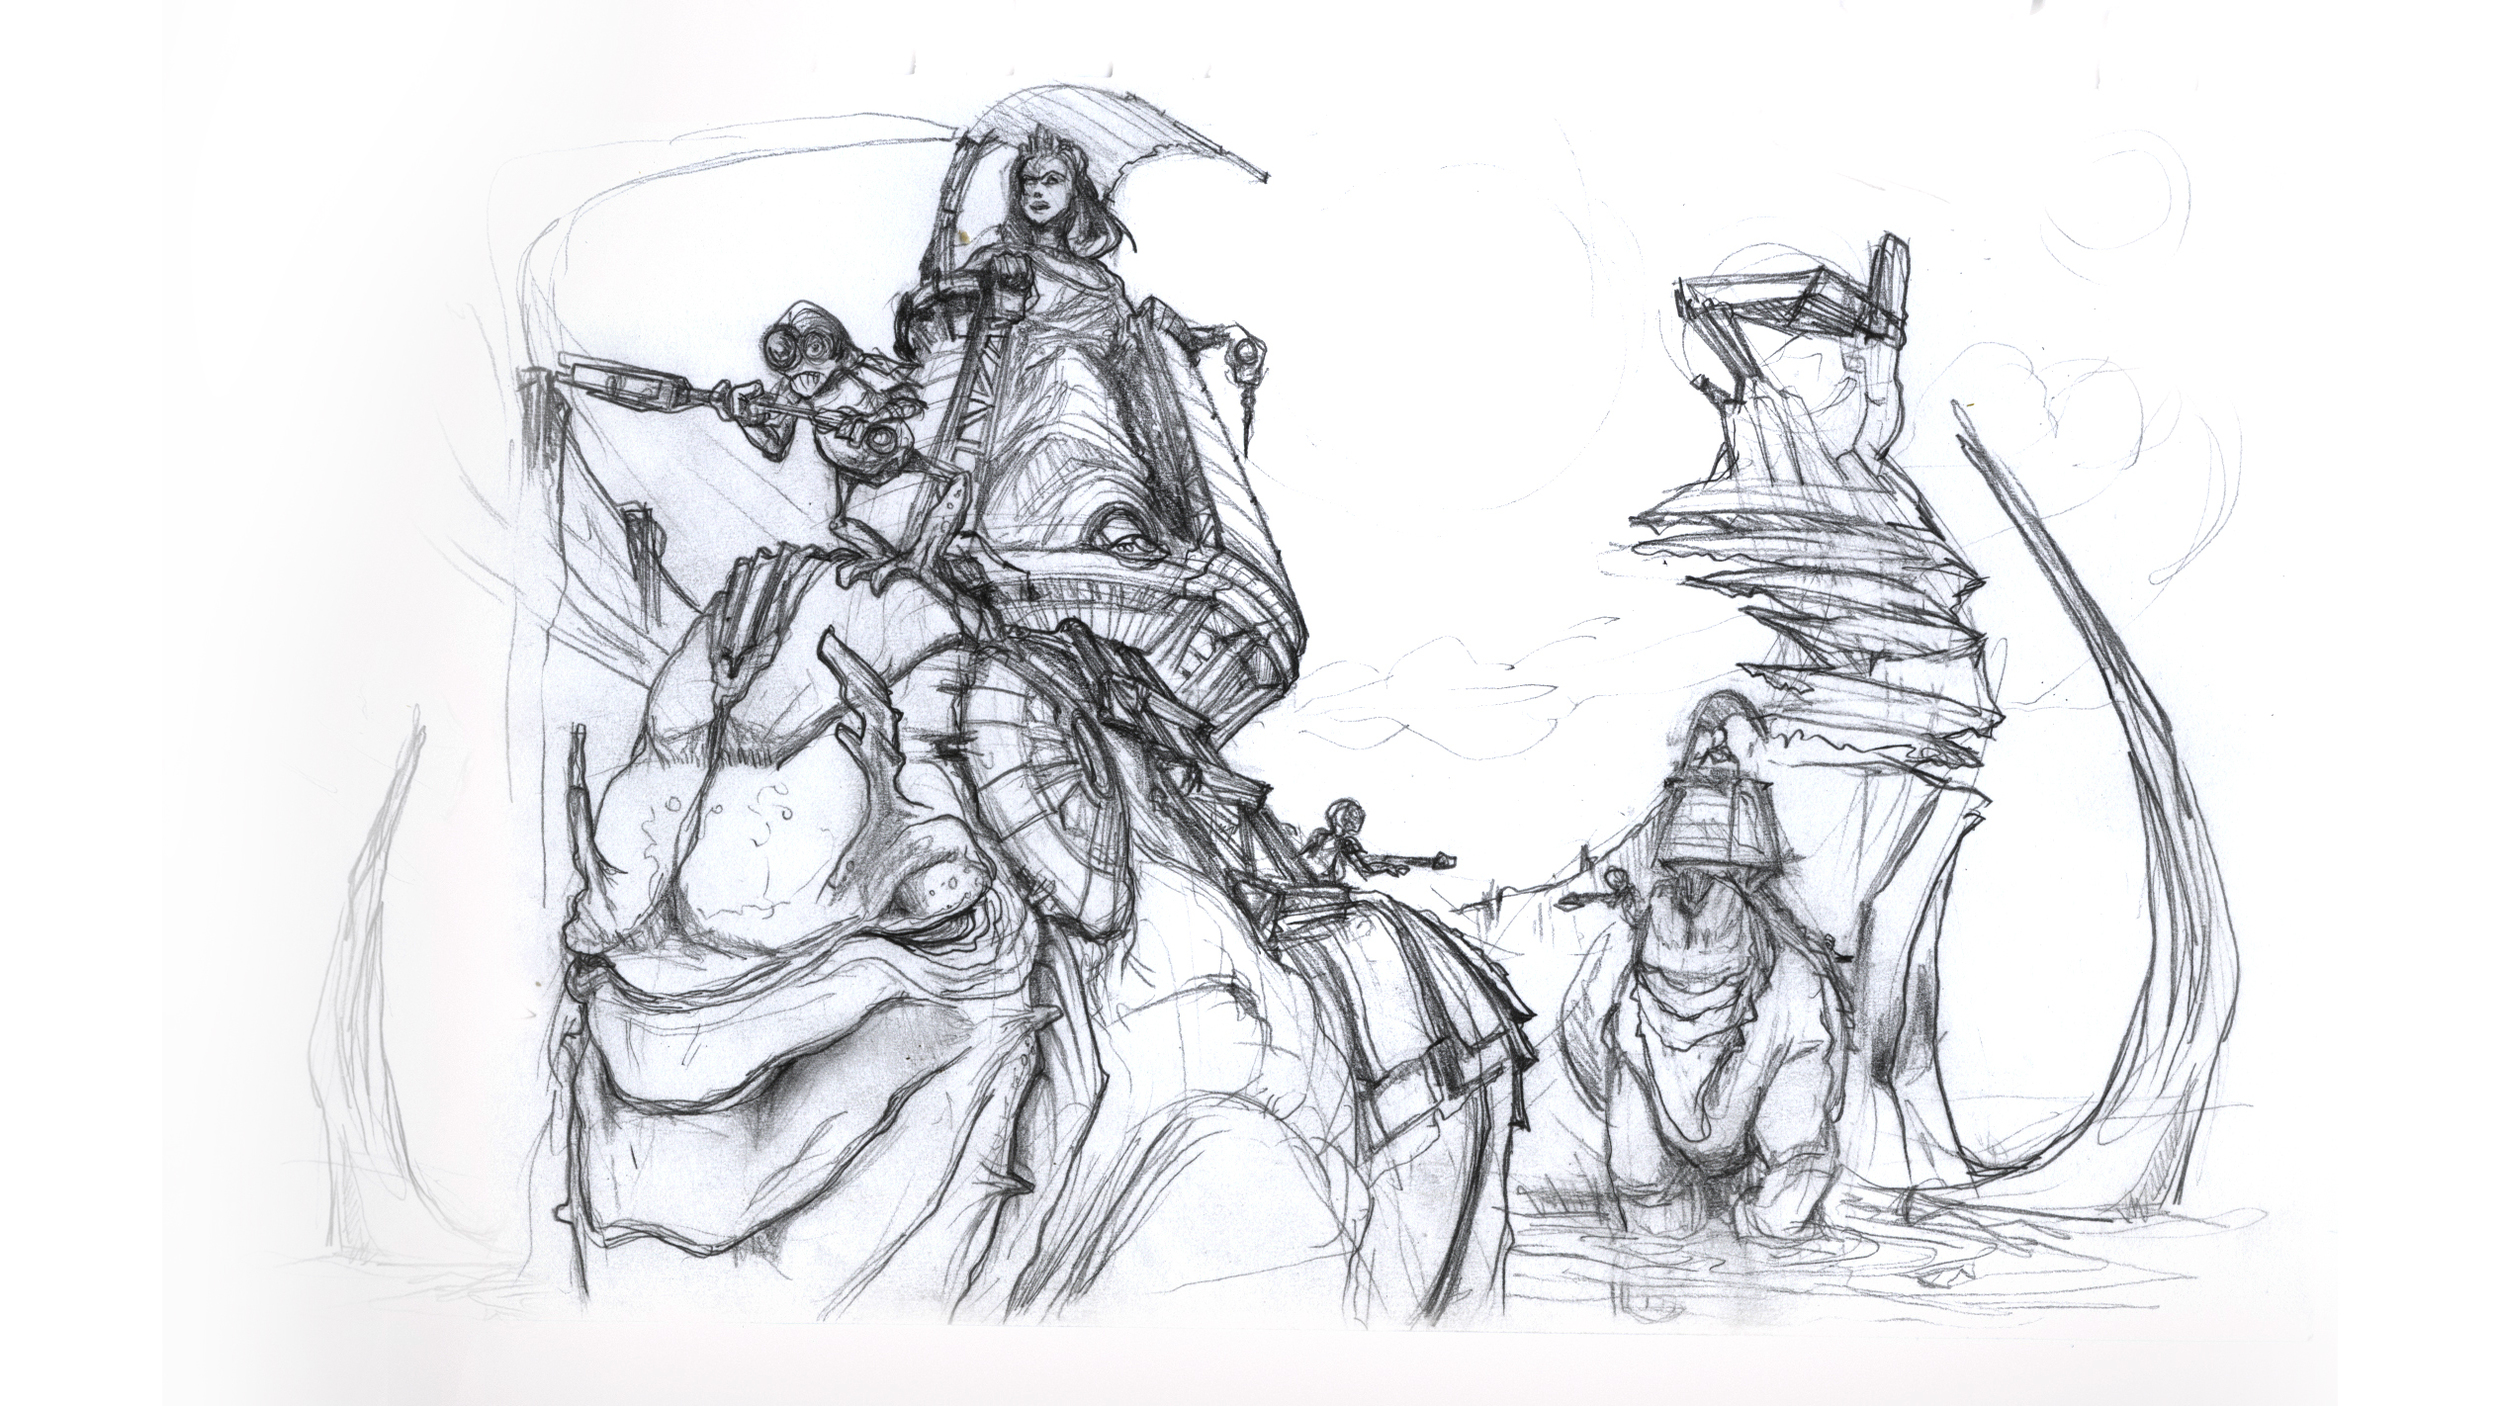 thumbnail sketch for concept painting depicting travelers across a desert landscape.